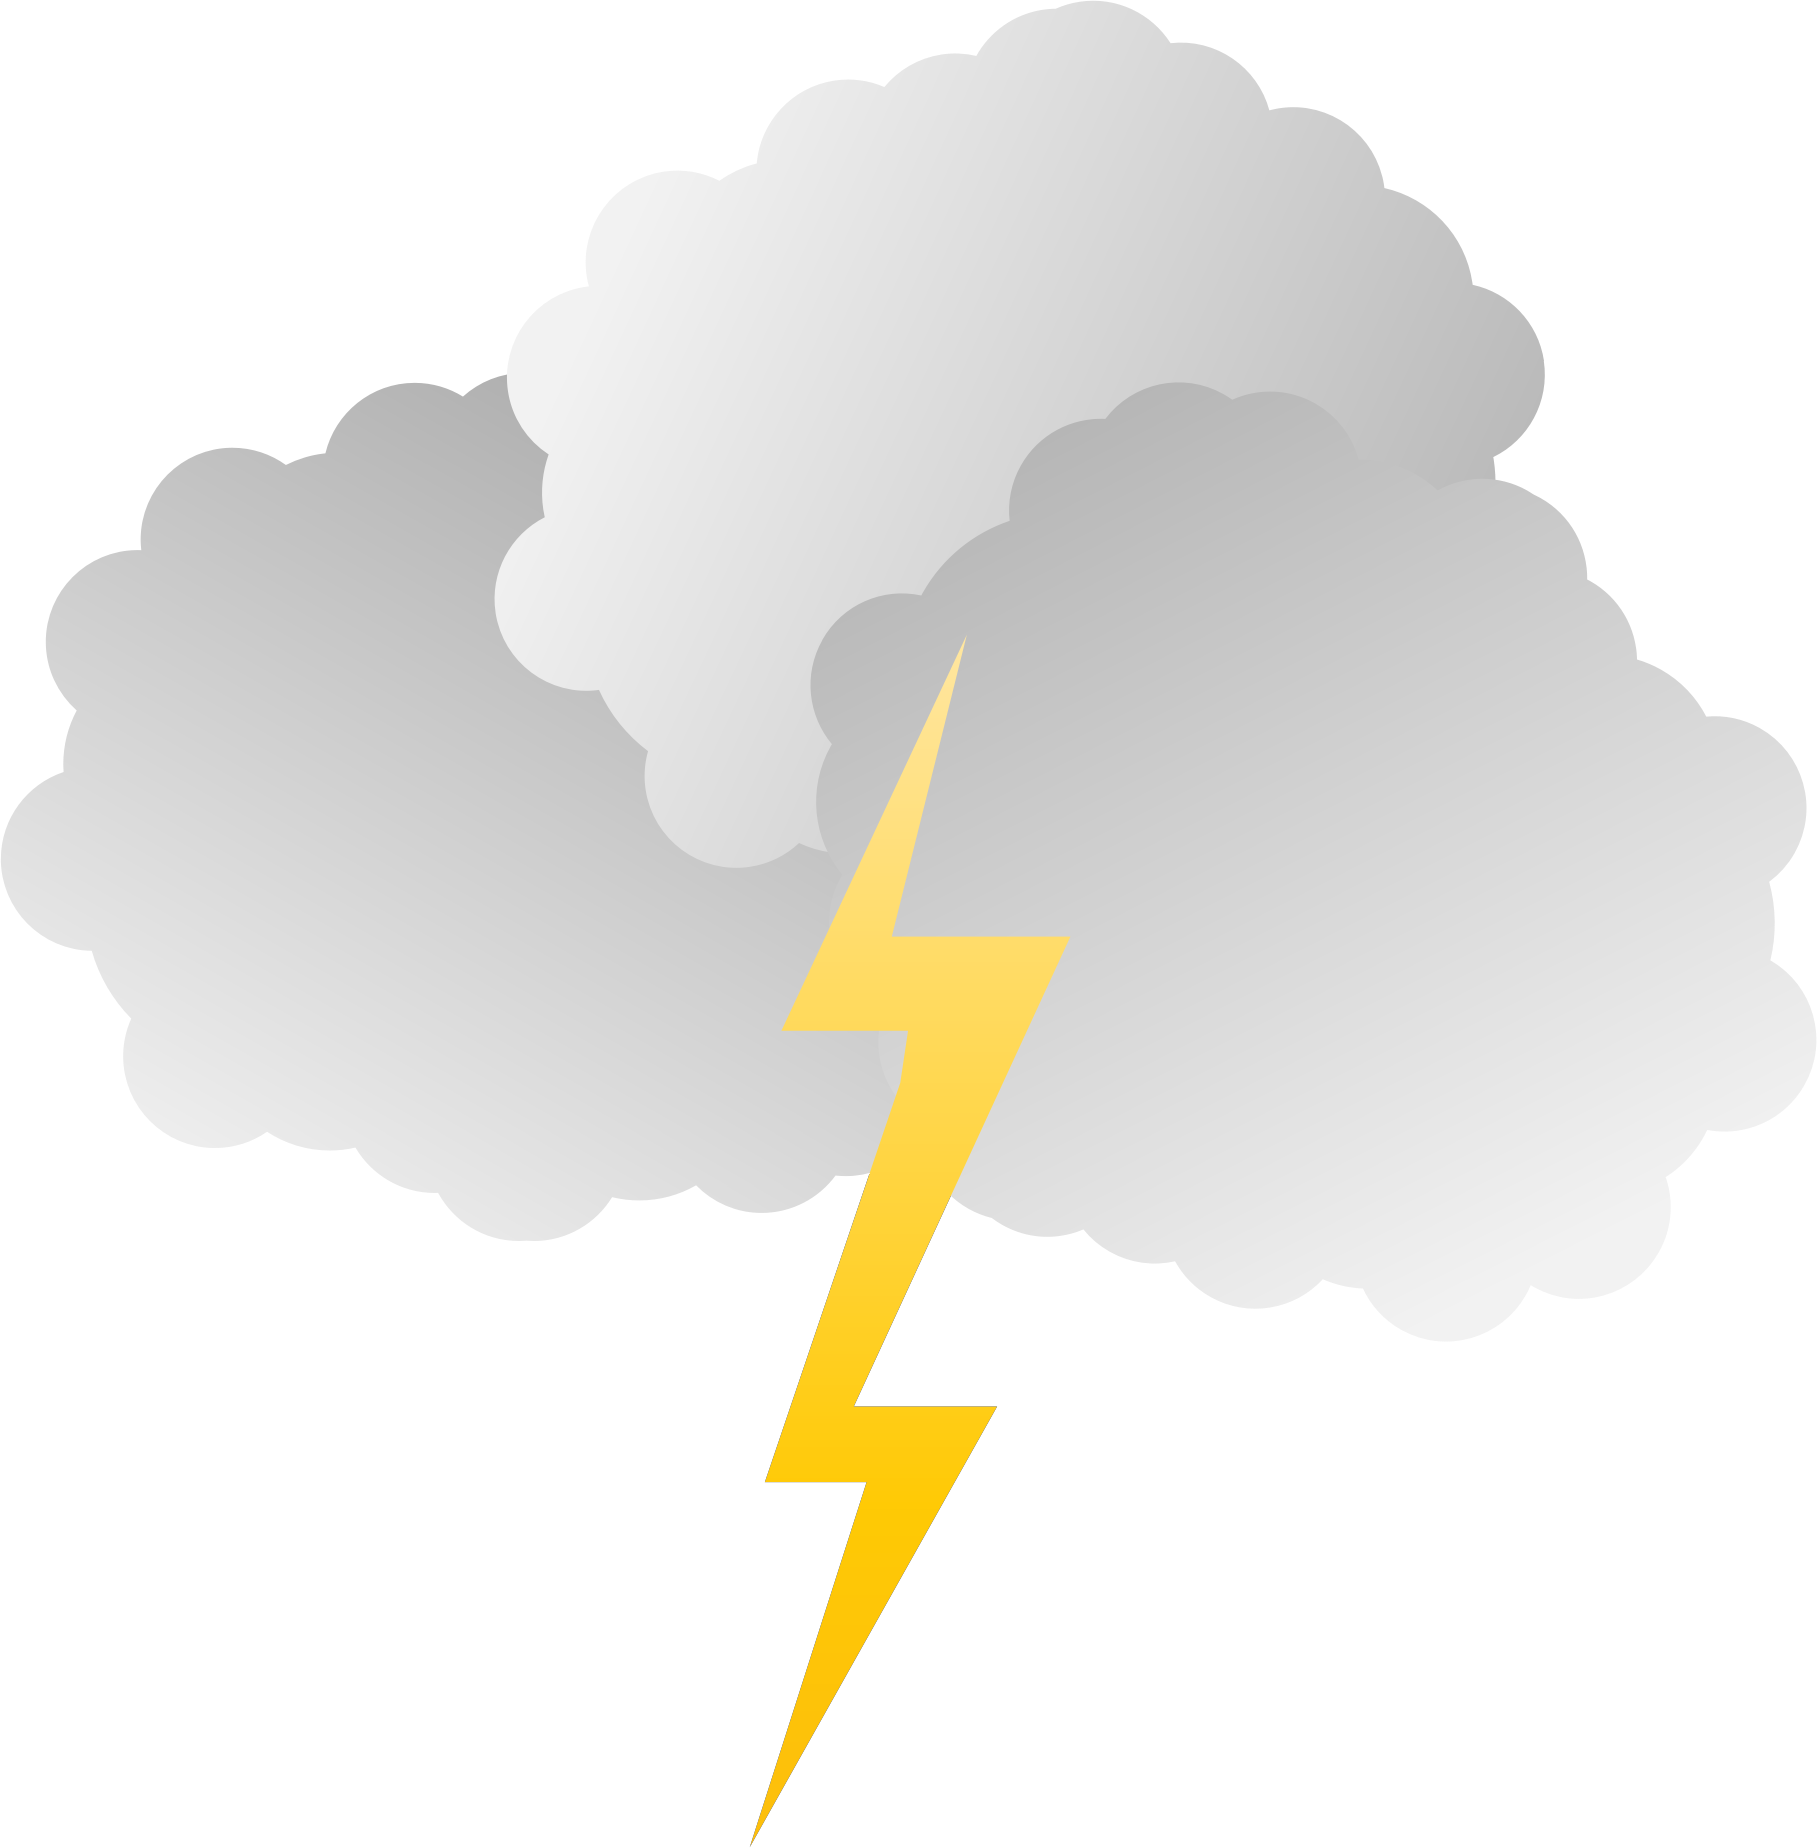 Lightening clipart storm cloud Clipart Clouds and and Clouds